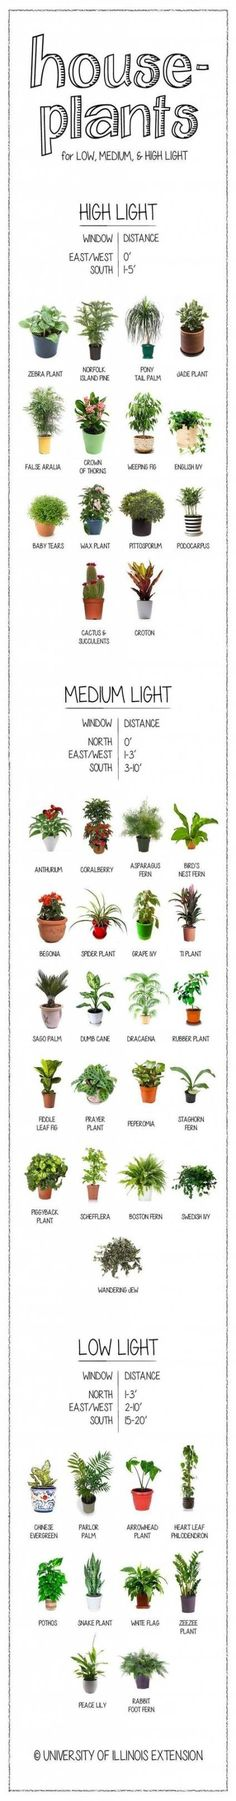 Diagrams That Make Gardening So Much Easier So useful right now: a visual guide to houseplants, according to their need for light.So useful right now: a visual guide to houseplants, according to their need for light. Container Gardening, Gardening Tips, Indoor Gardening, Urban Gardening, Organic Gardening, Vegetable Gardening, Succulent Containers, Gardening Gloves, Plantas Indoor